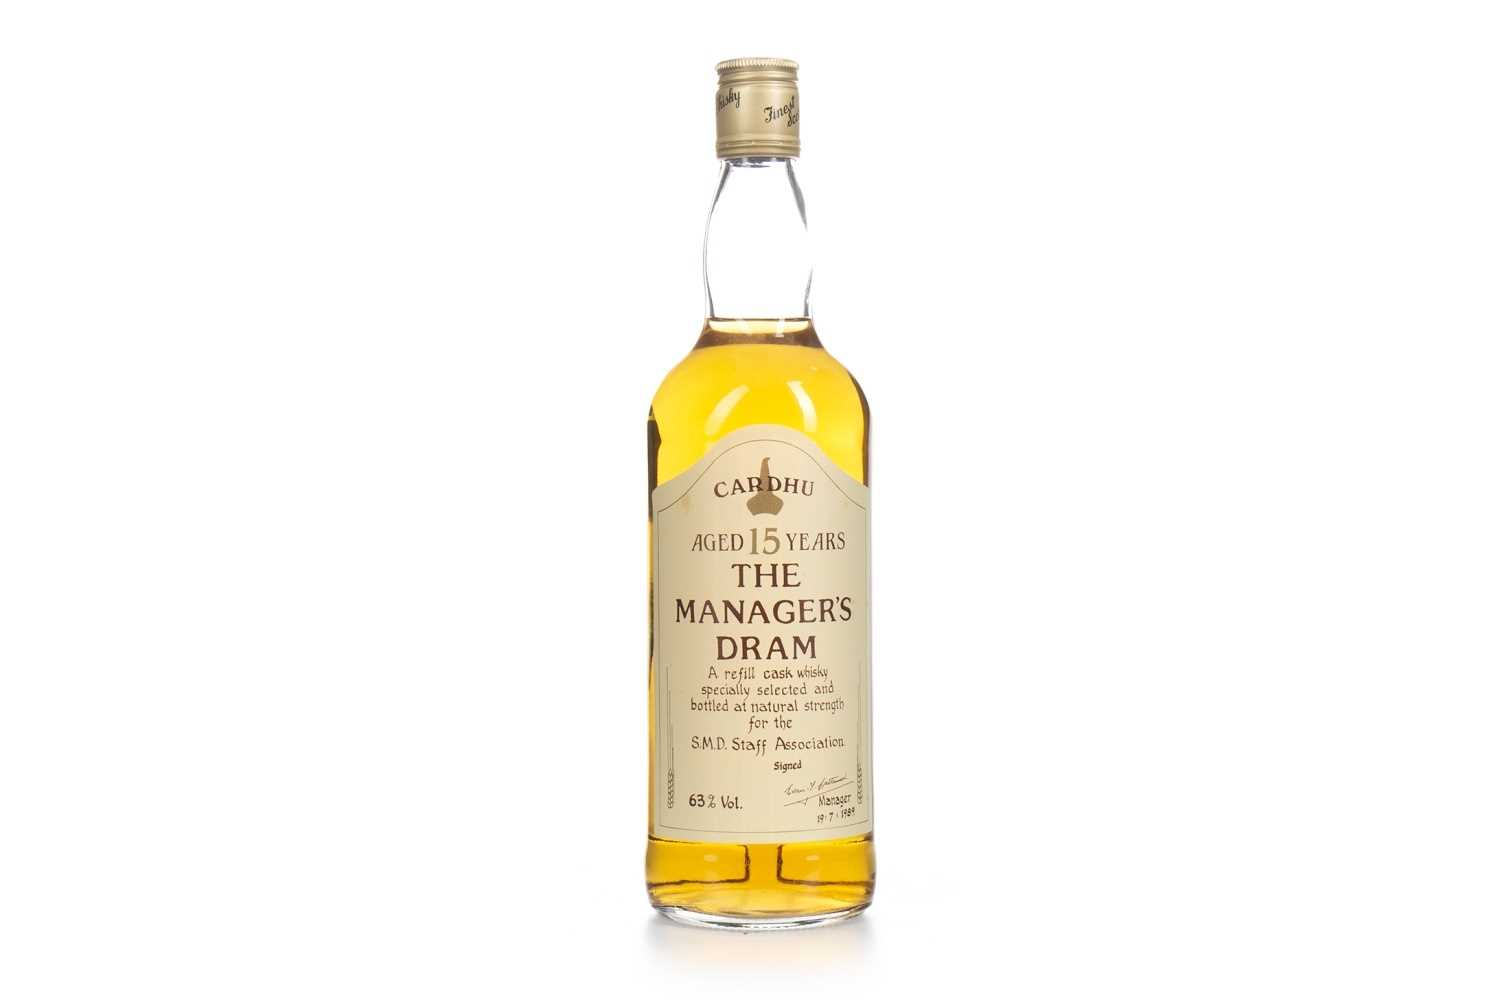 Lot 3-CARDHU MANAGERS DRAM AGED 15 YEARS